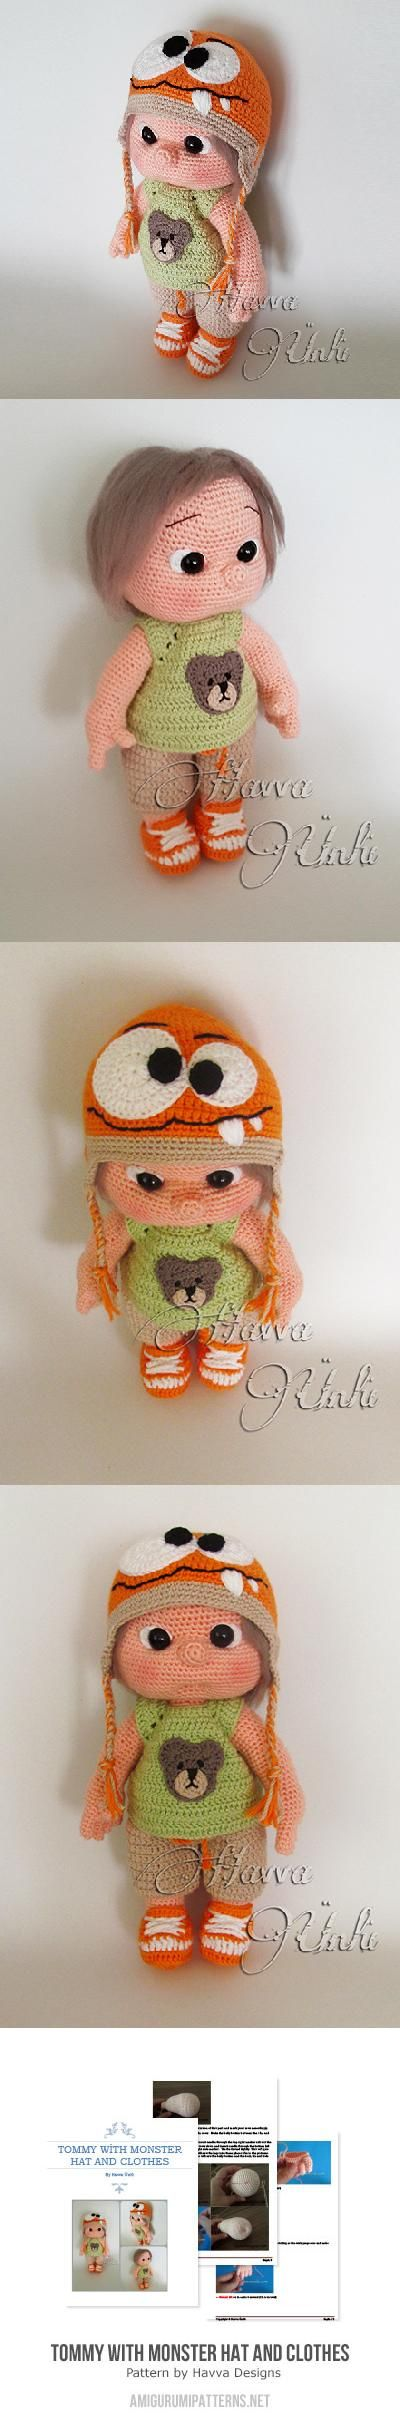 Tommy With Monster Hat And Clothes Amigurumi Pattern